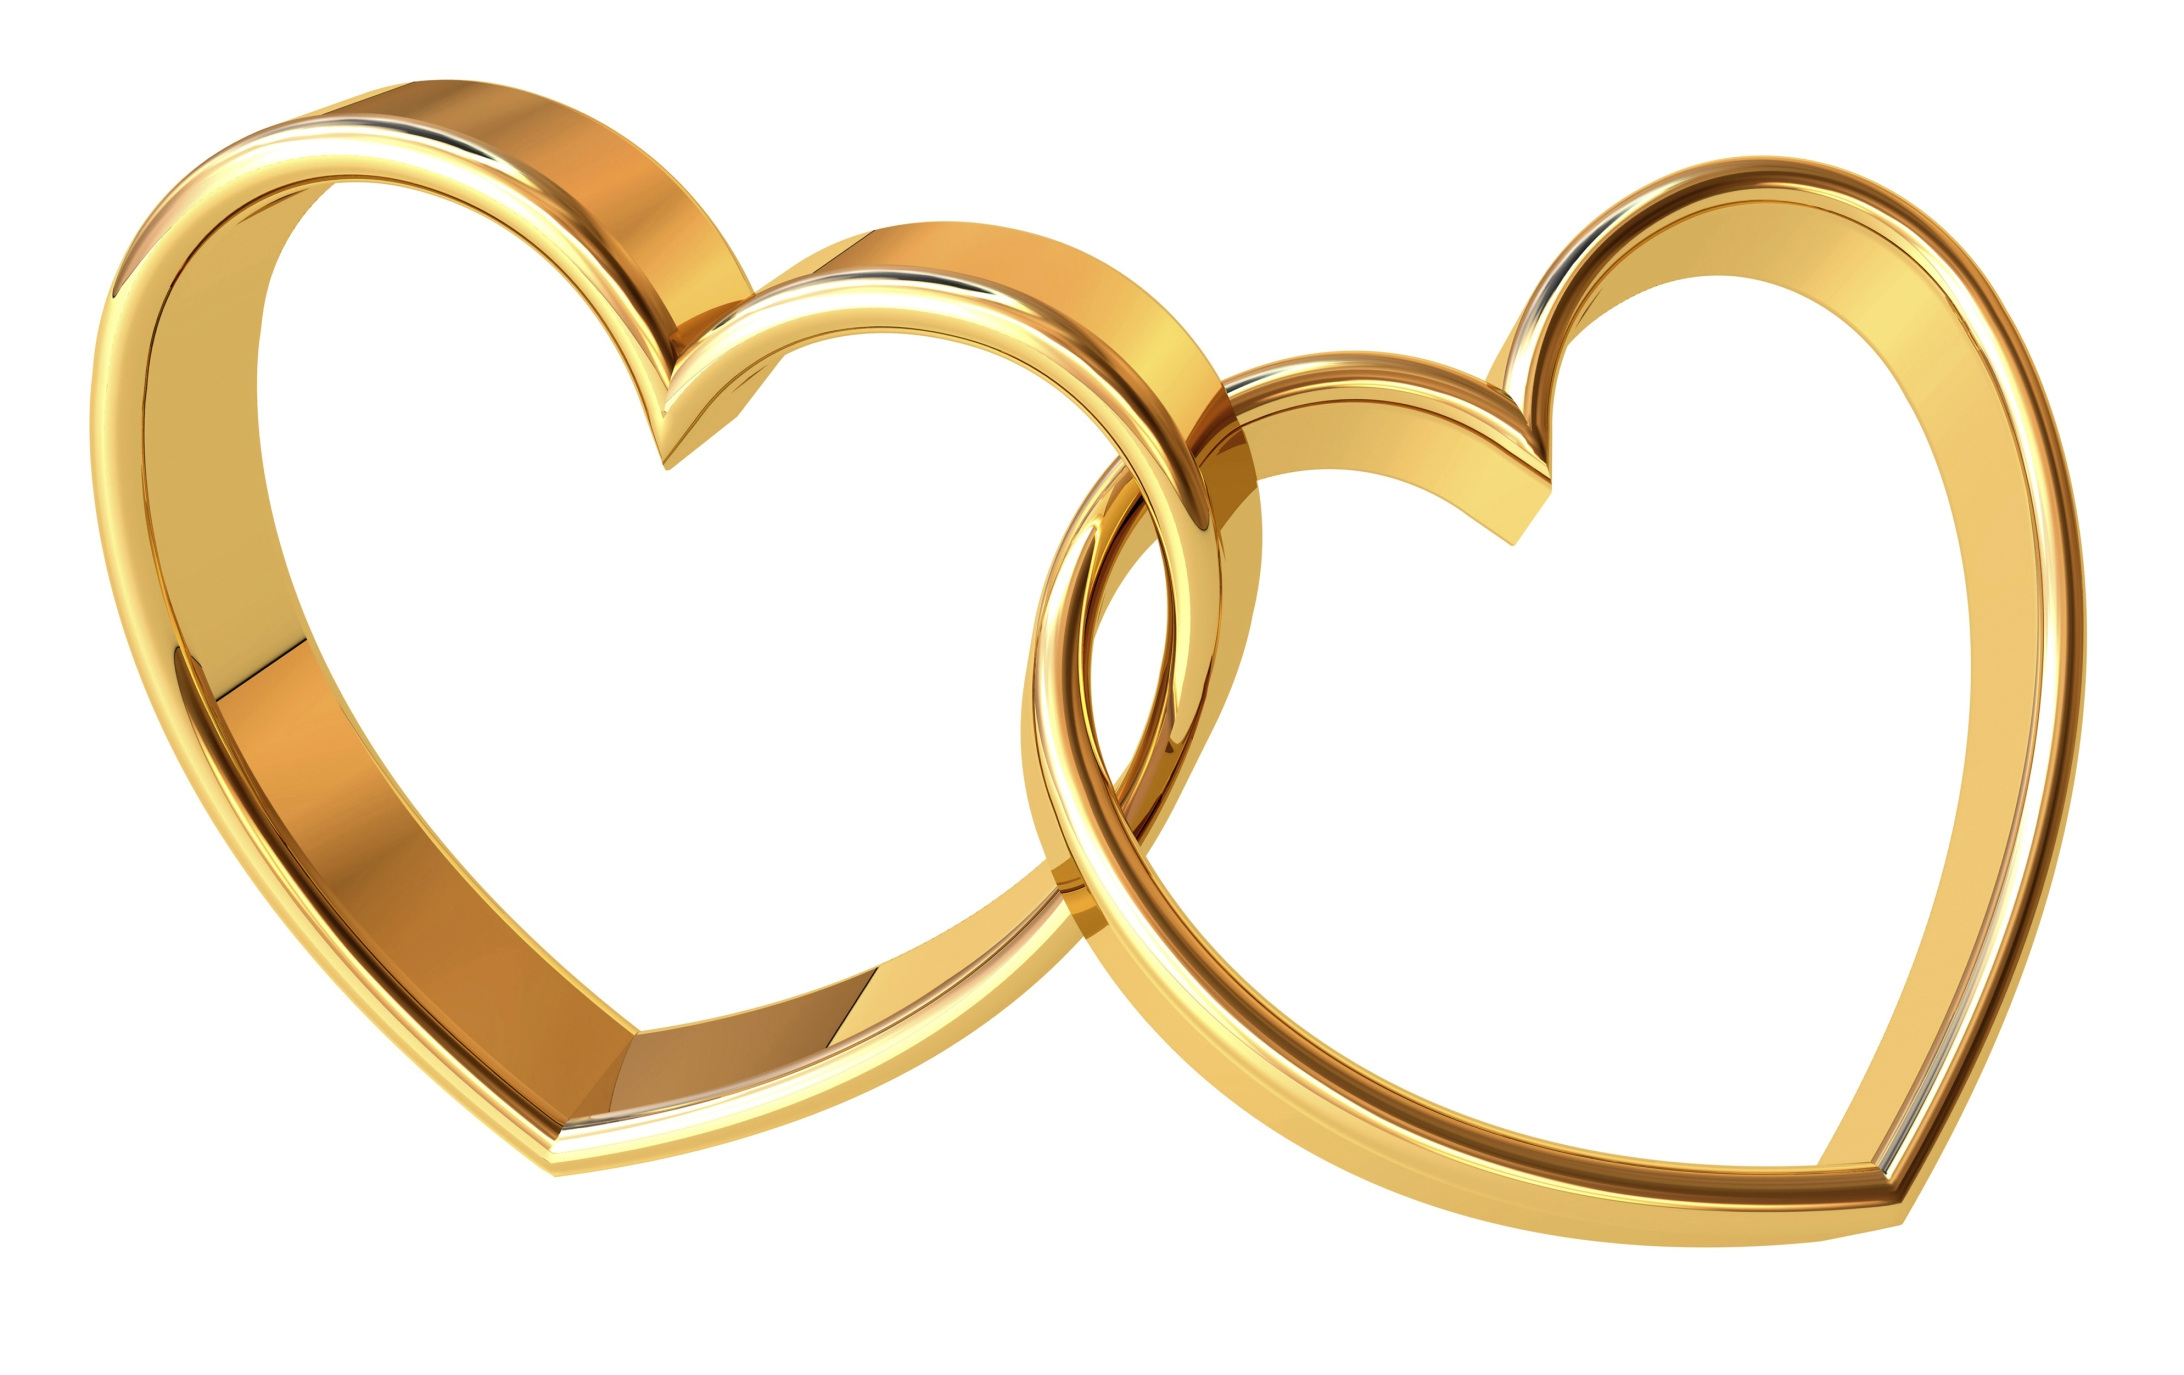 Wedding ring clipart images